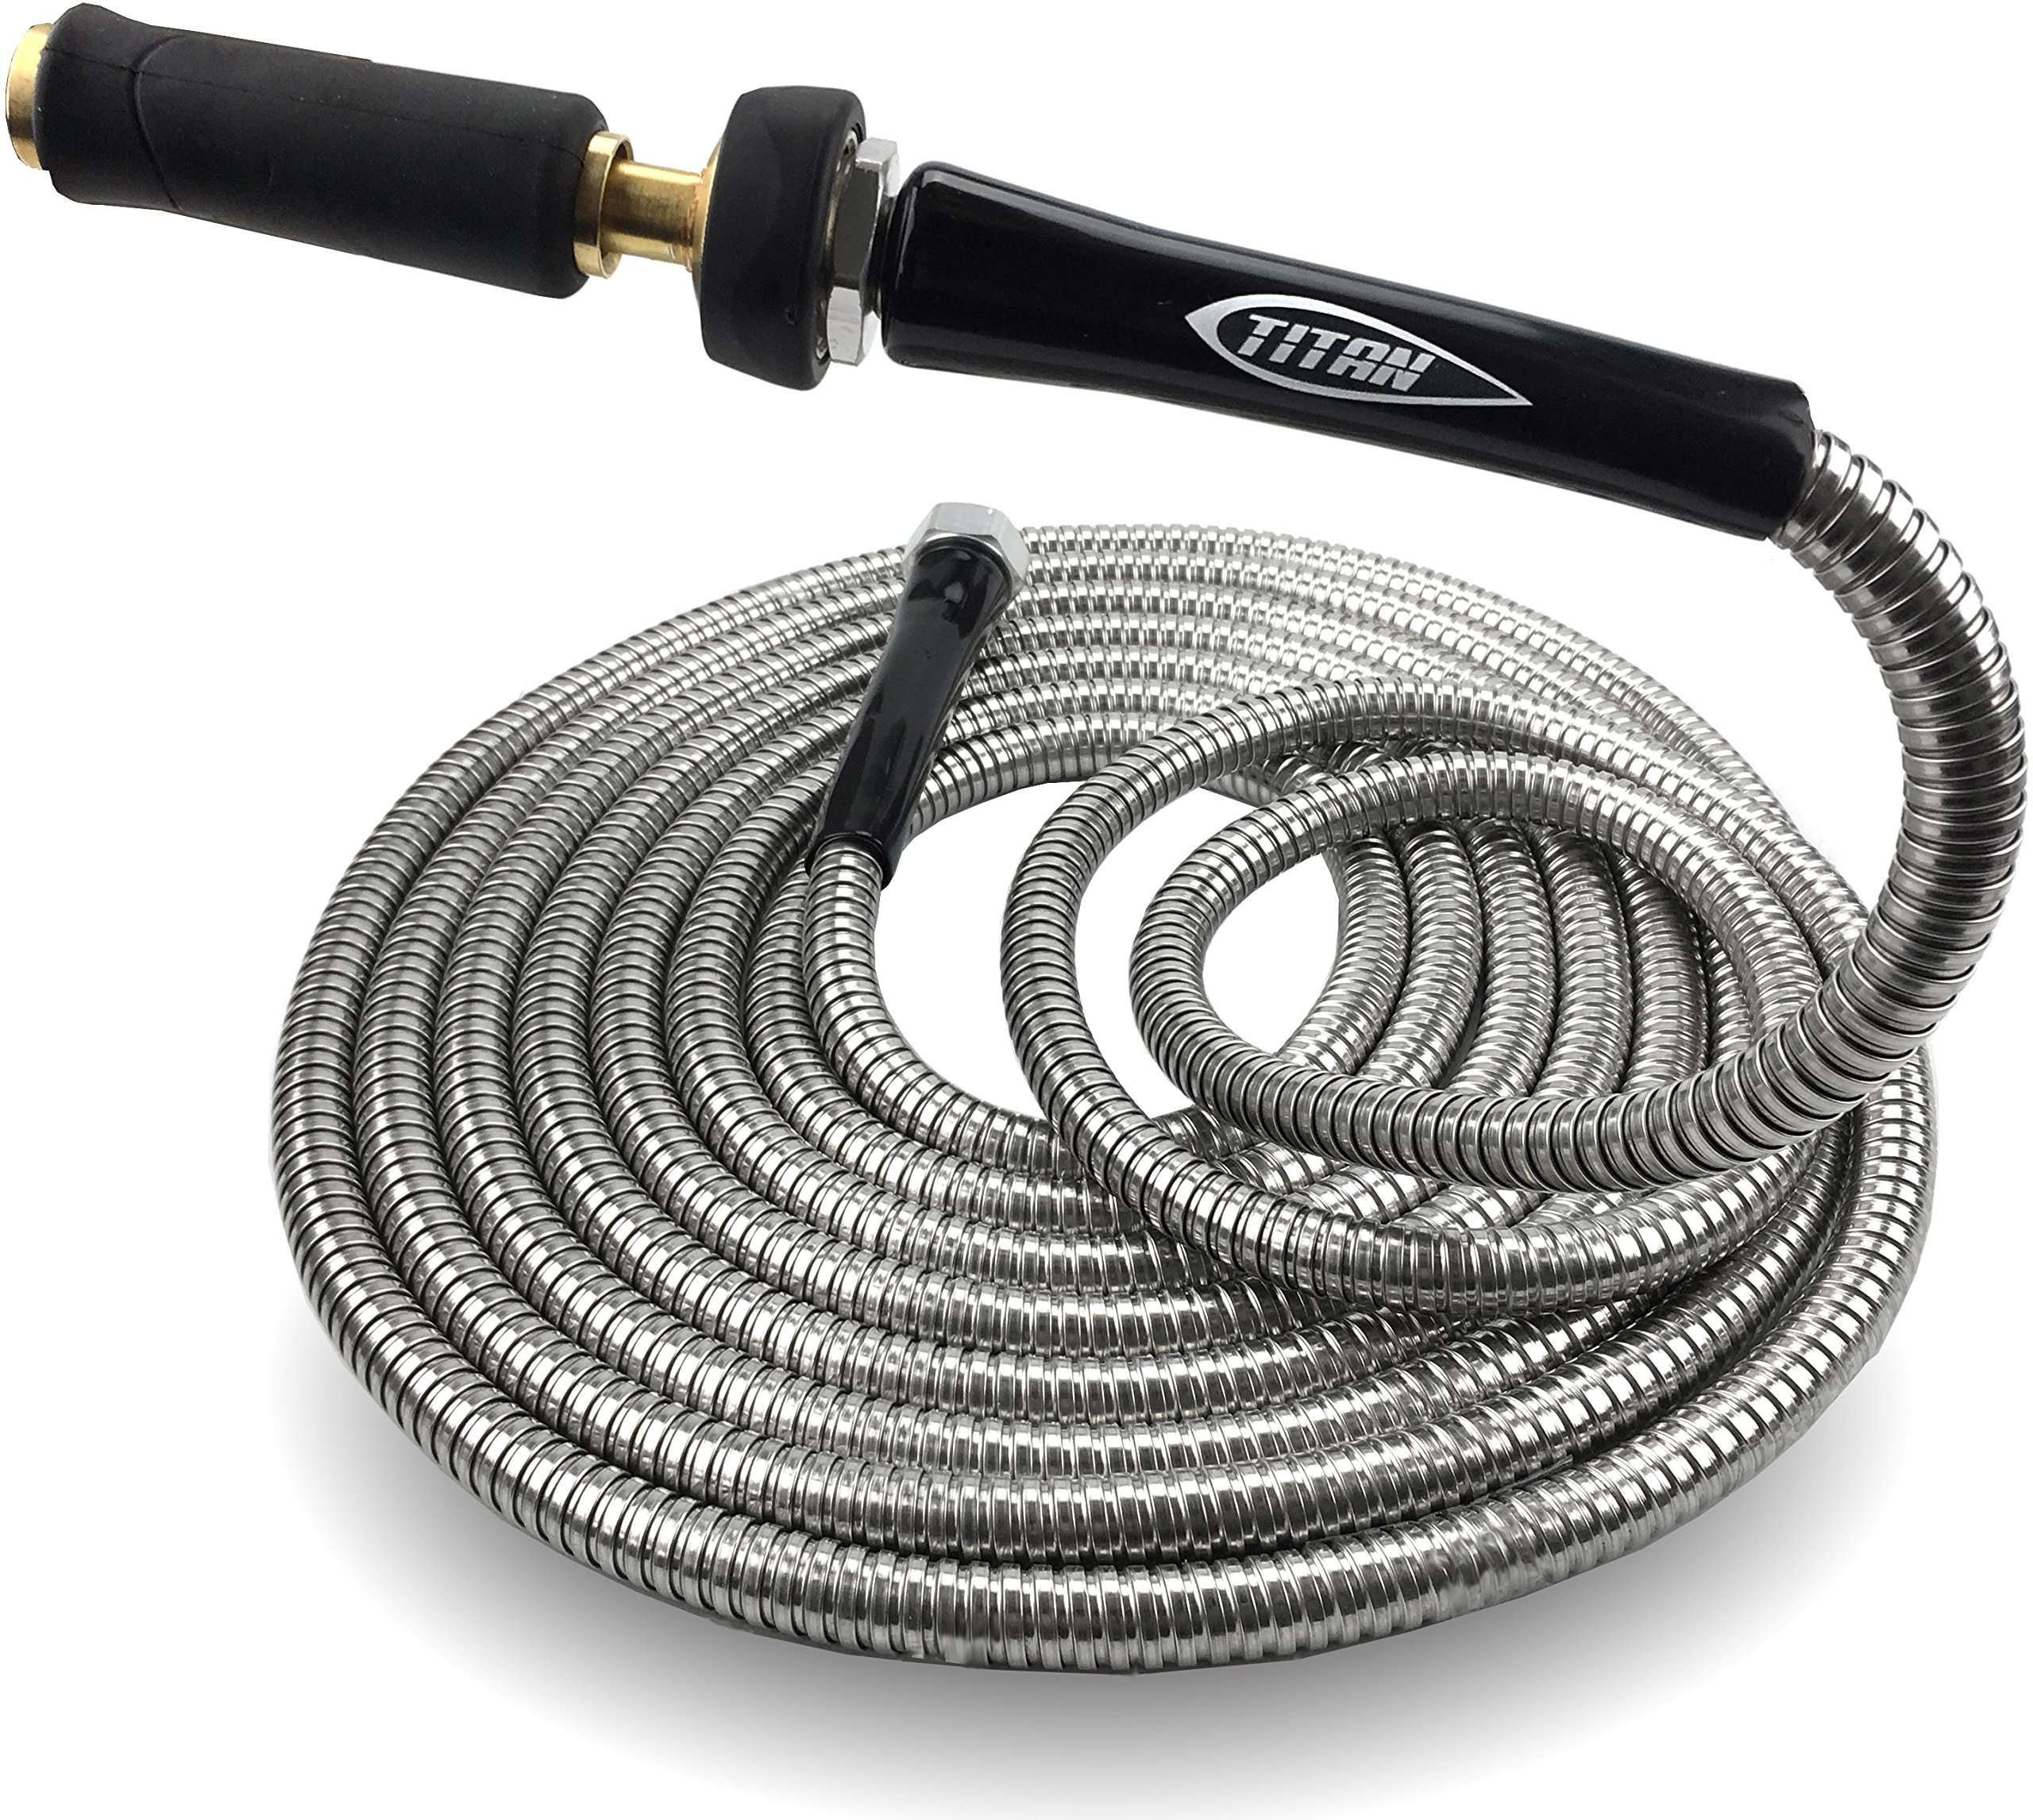 100FT Heavy Duty 304 Stainless Steel Garden Hose by Titan BONUS Solid Brass Watering Nozzle Lightweight Kink-Free Strong Durable Metal Outer Layer